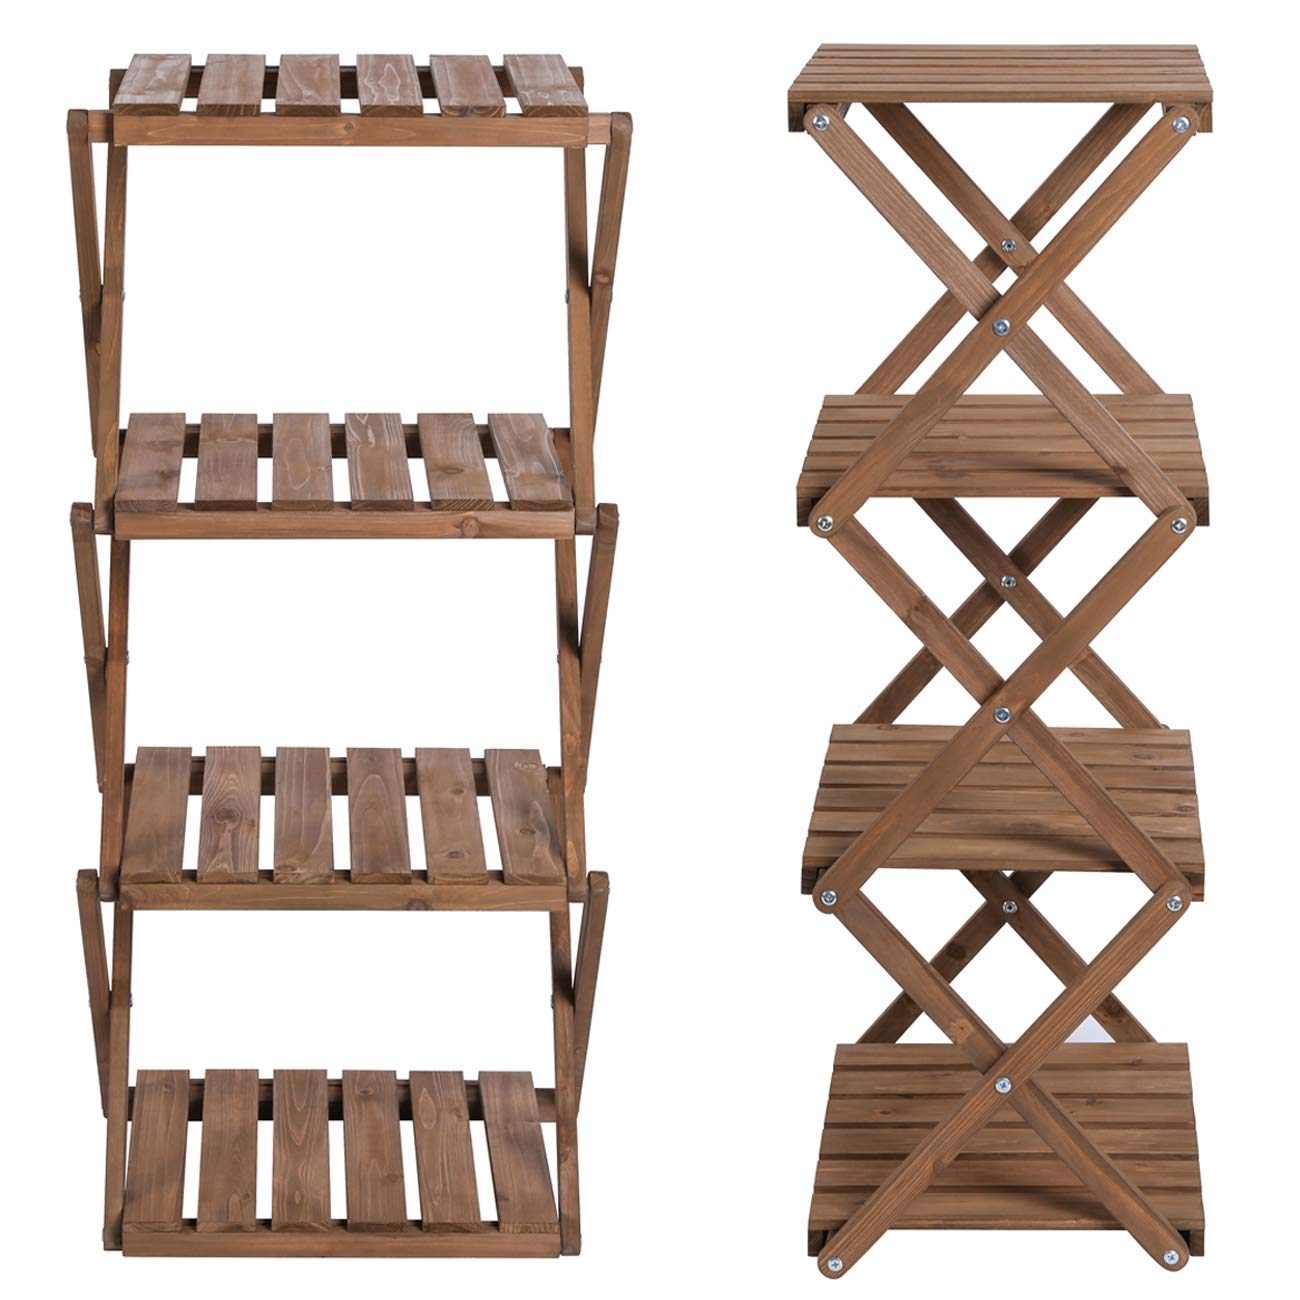 Sunnyglade 4-Tier Foldable Flower Rack Plant Stand Wood Shelf Multipurpose Utility Storage Rack Books Picture Frames Shelves for Yard Garden Patio Balcony Bedroom by Sunnyglade (Image #2)